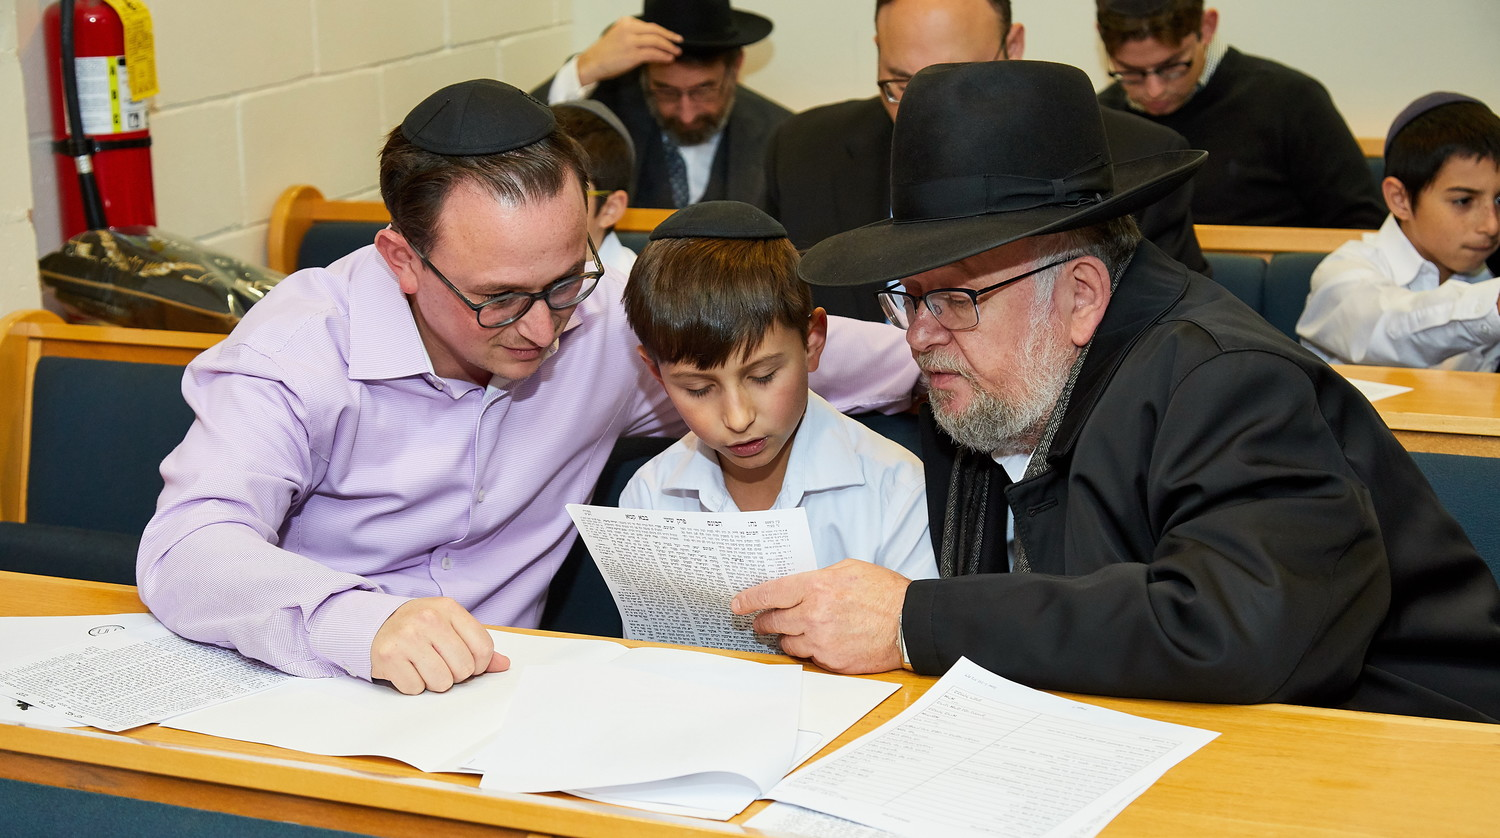 Meir Katz, a fifth grader at Yeshiva of South Shore, is accompanied by his father and grandfather at a multi-generational celebration of his class' Haschalas Gemarah.